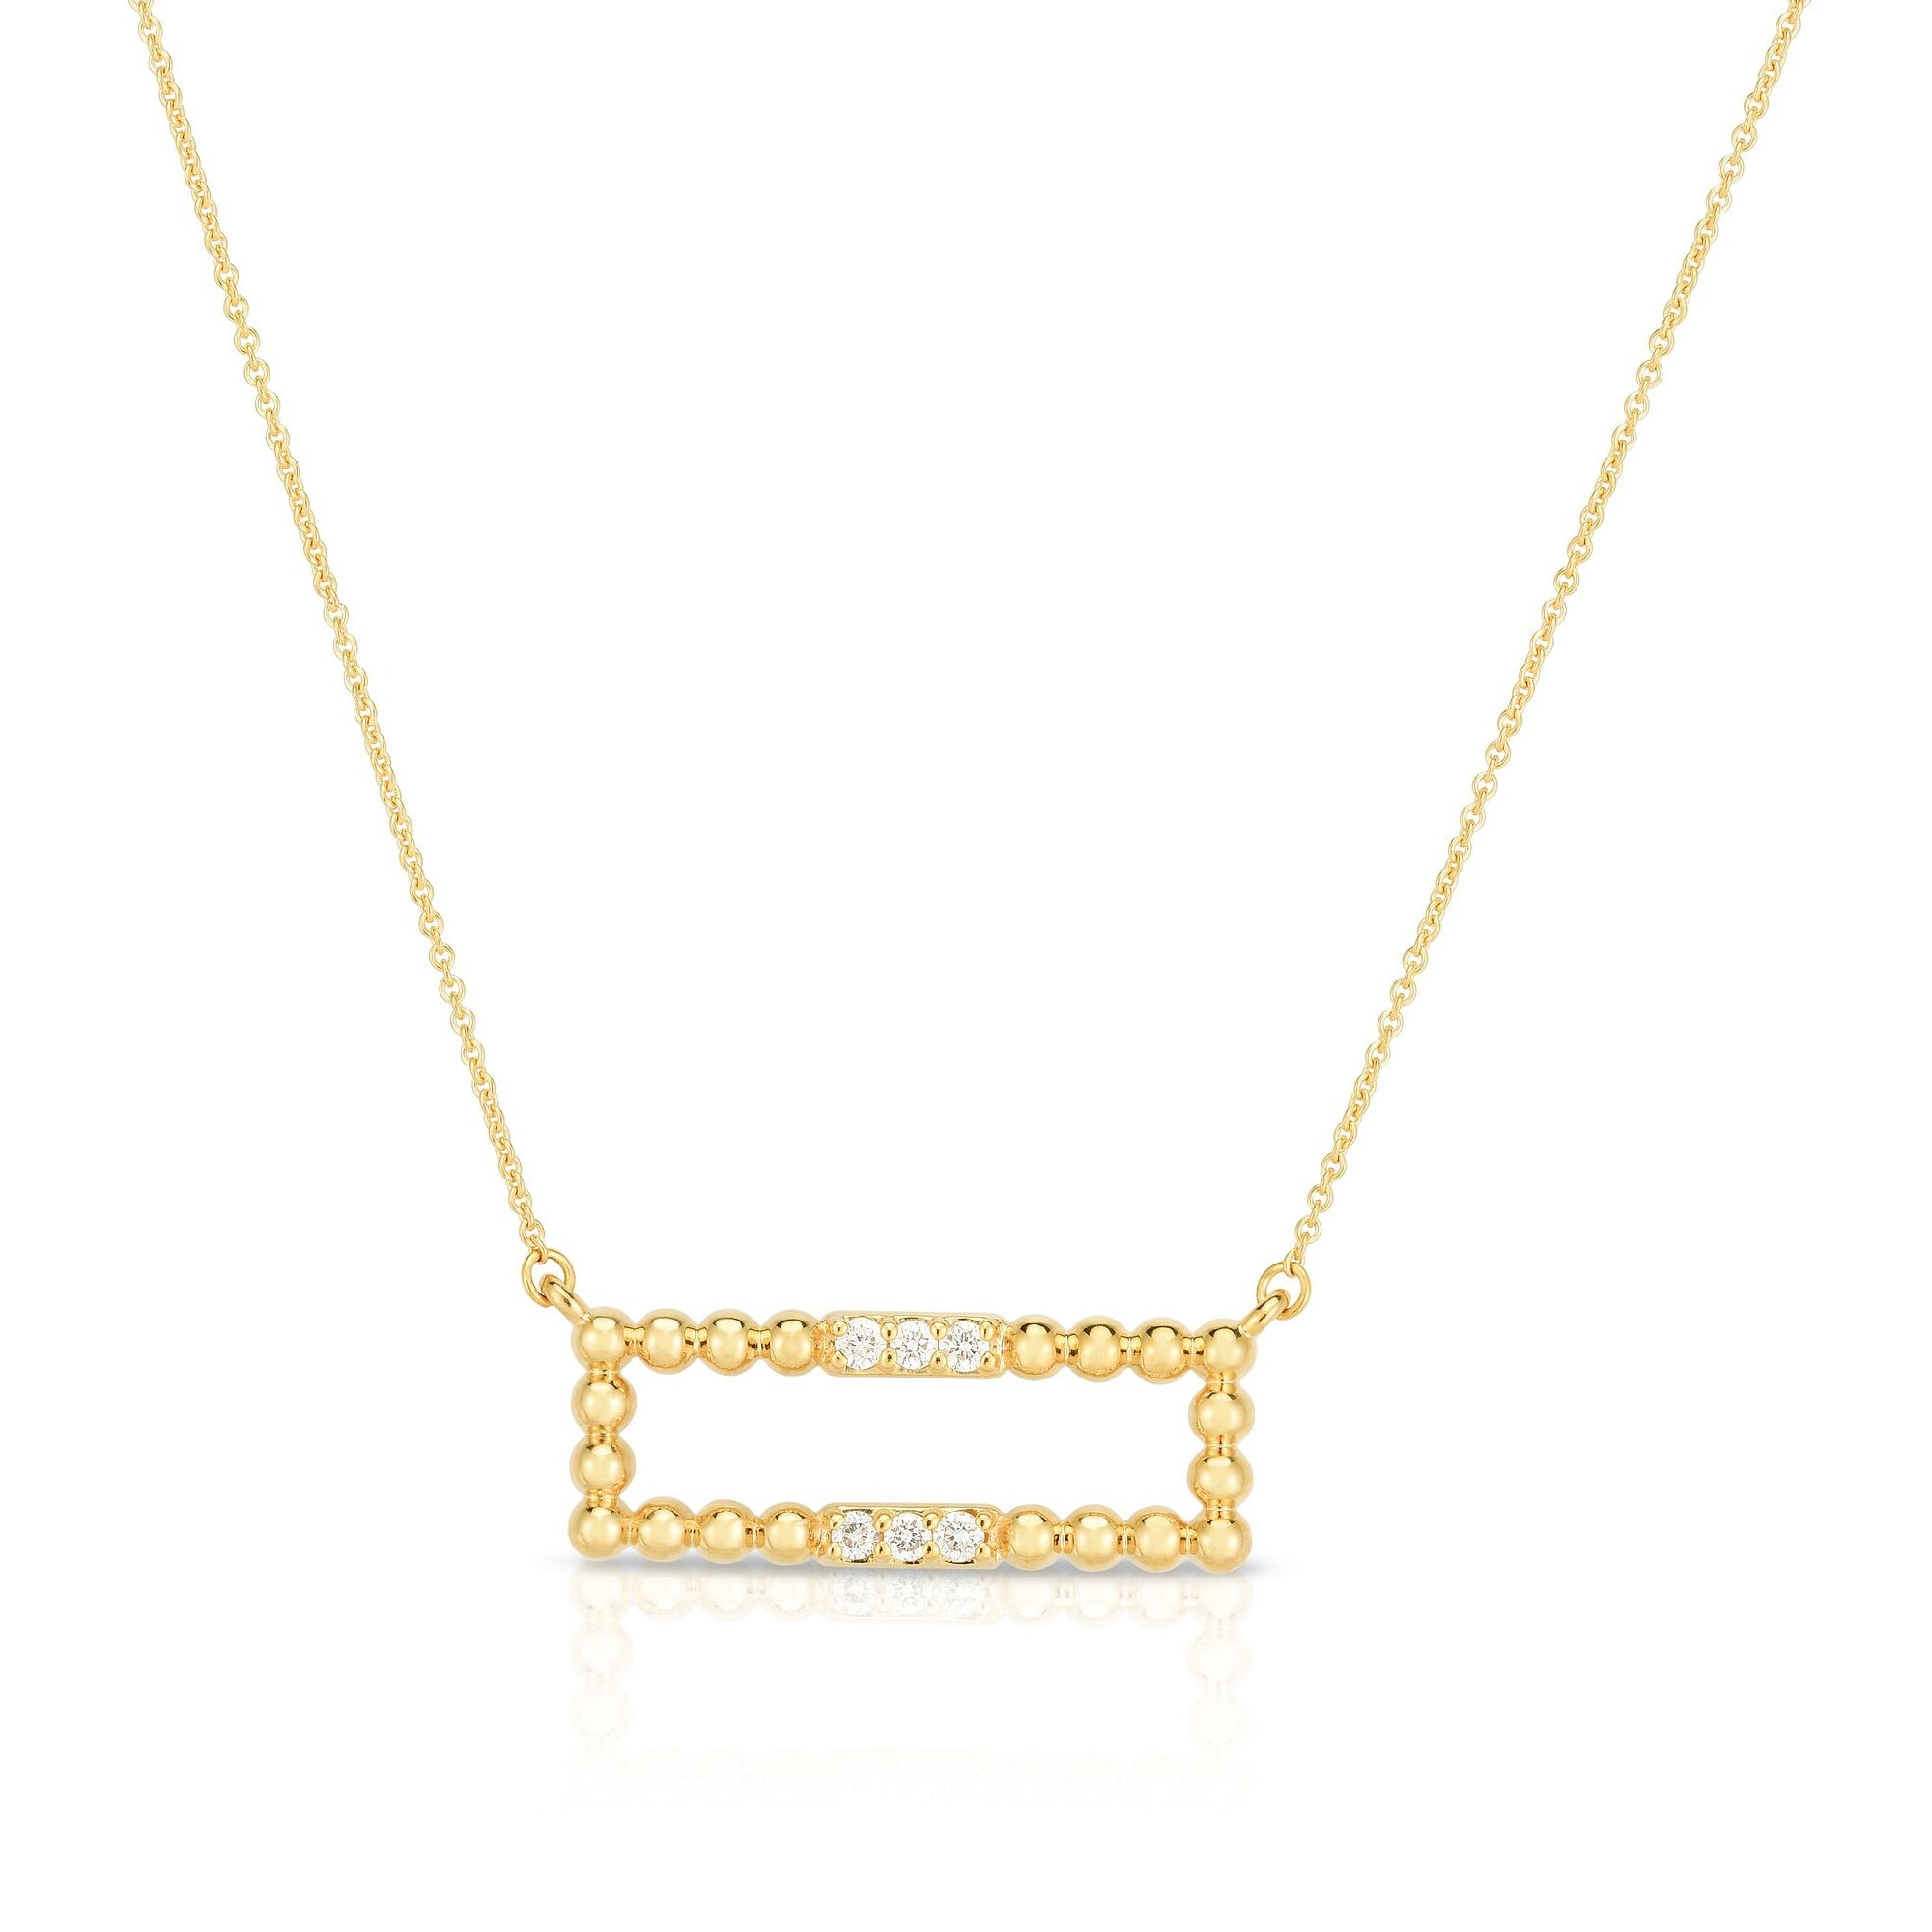 Bead and Diamond Bar Necklace, 14K Yellow Gold